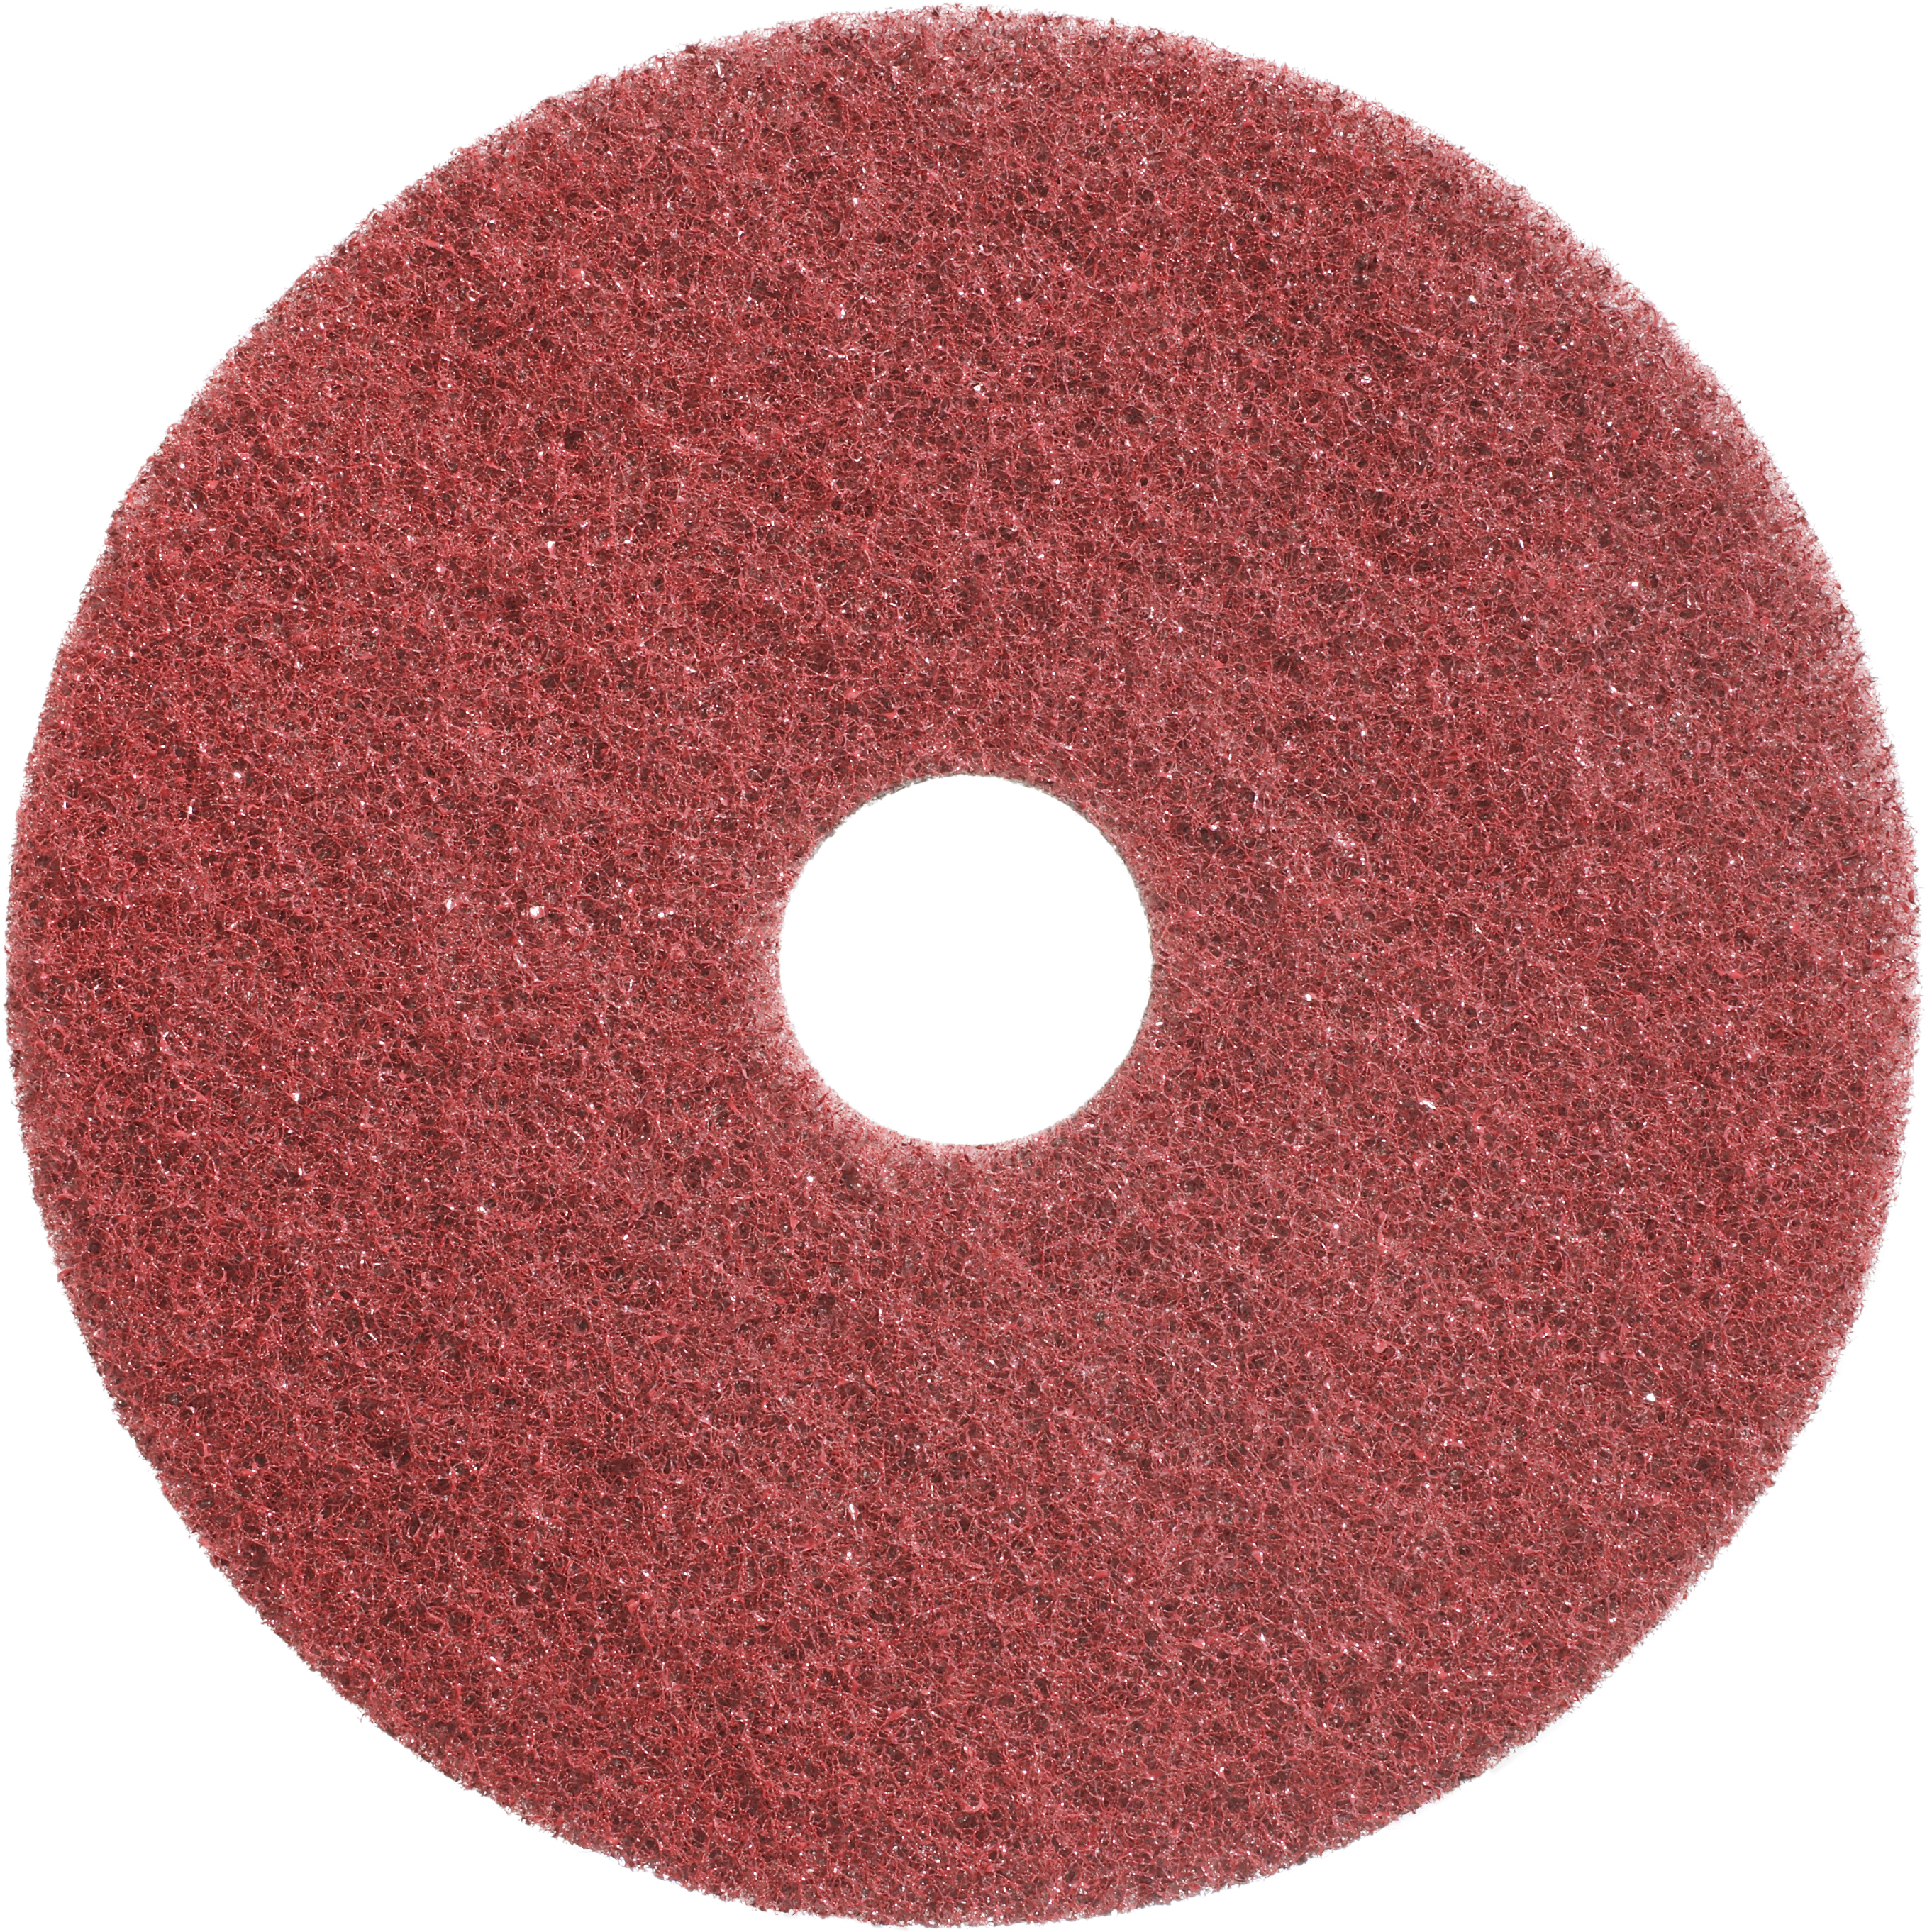 Red Twister Pad